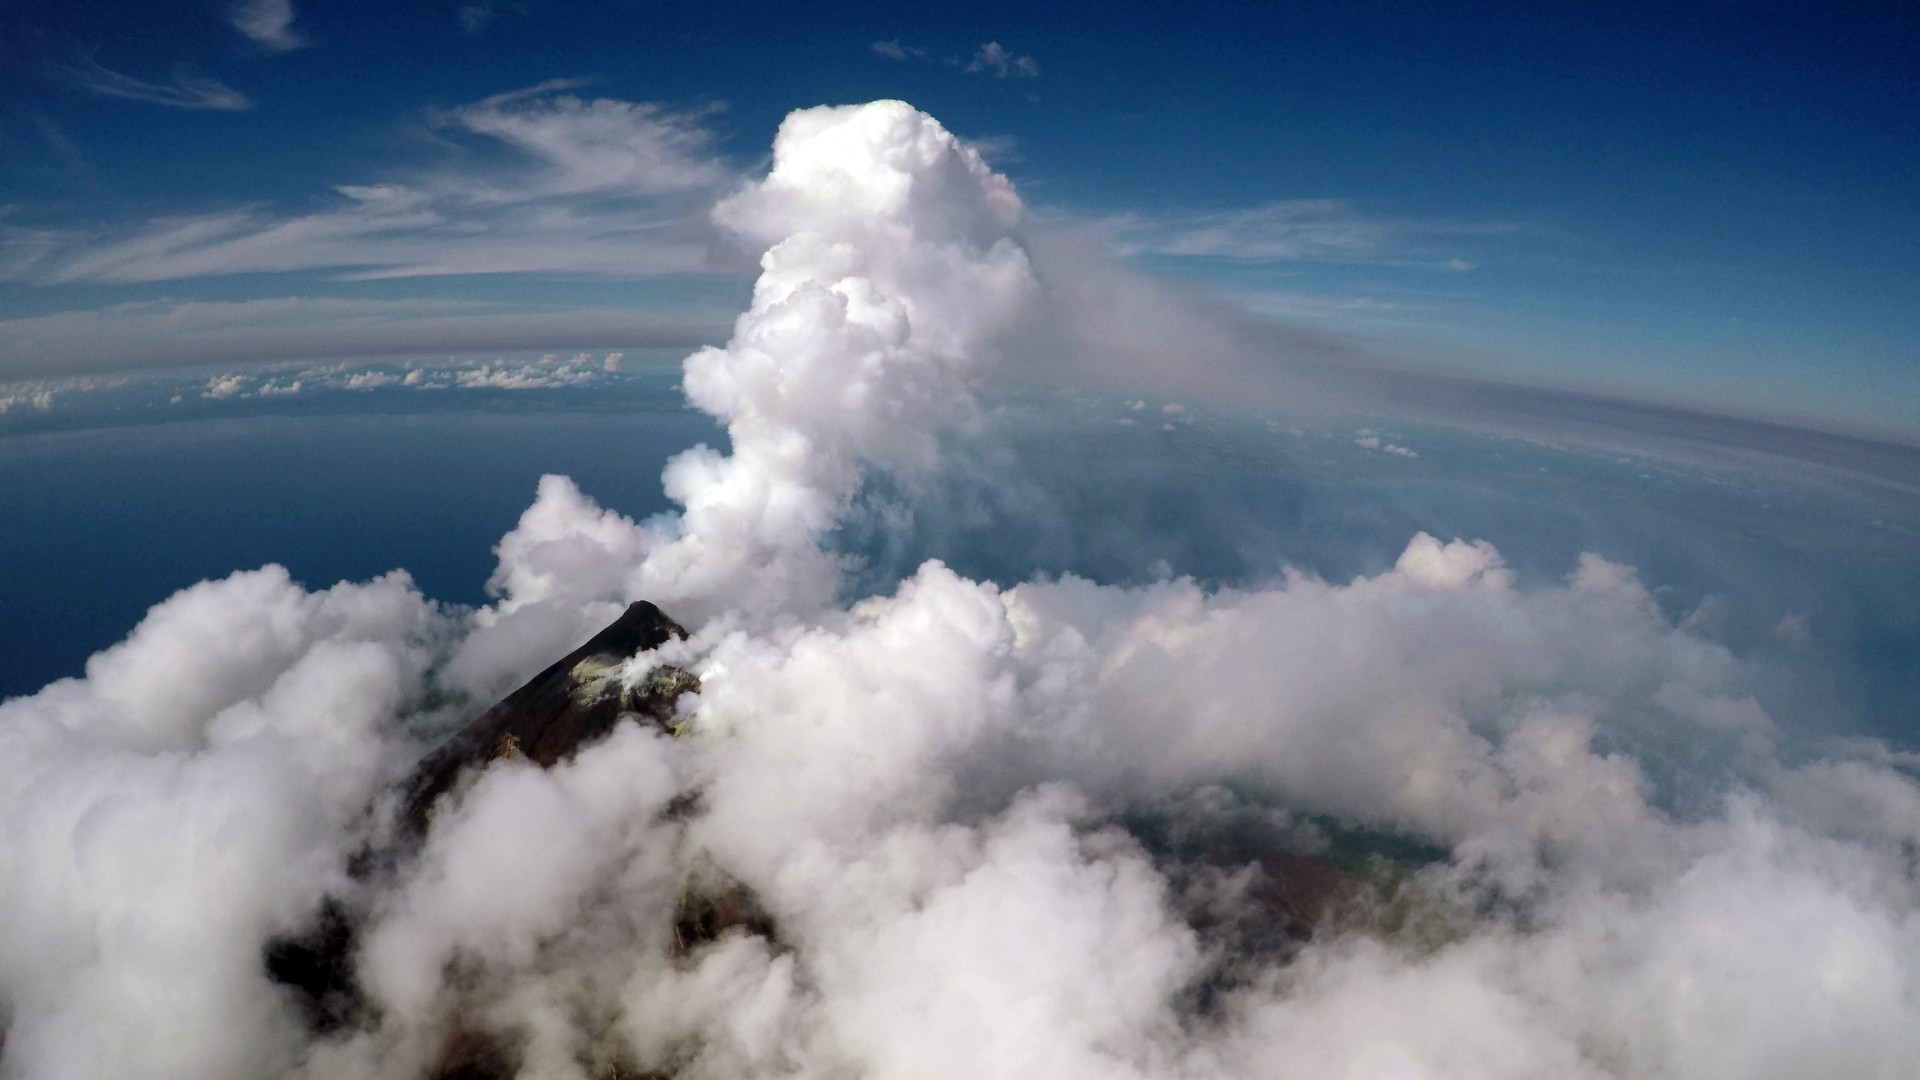 Aerial view of the active vent and gas plume of Manam volcano, Papua New Guinea, from a fixed-wing drone at 2300 m altitude. Credit - Matthew Wordell